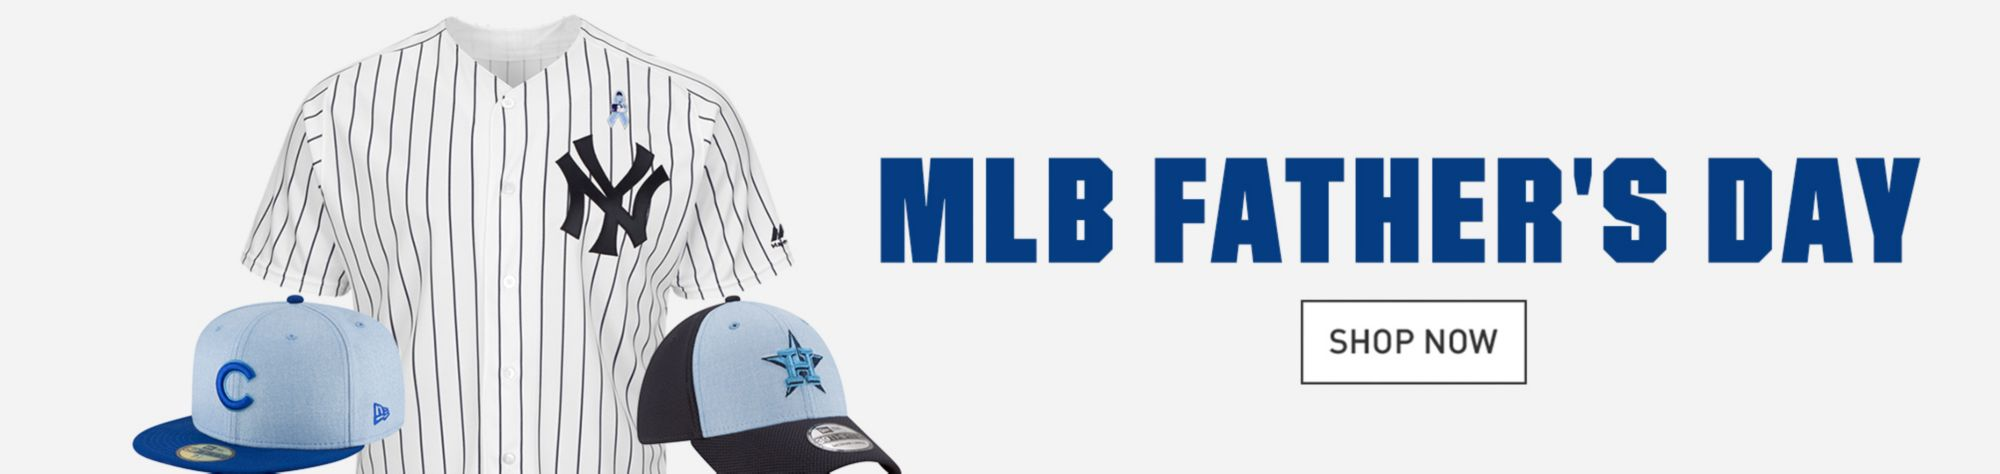 MLB Father's Day 2018